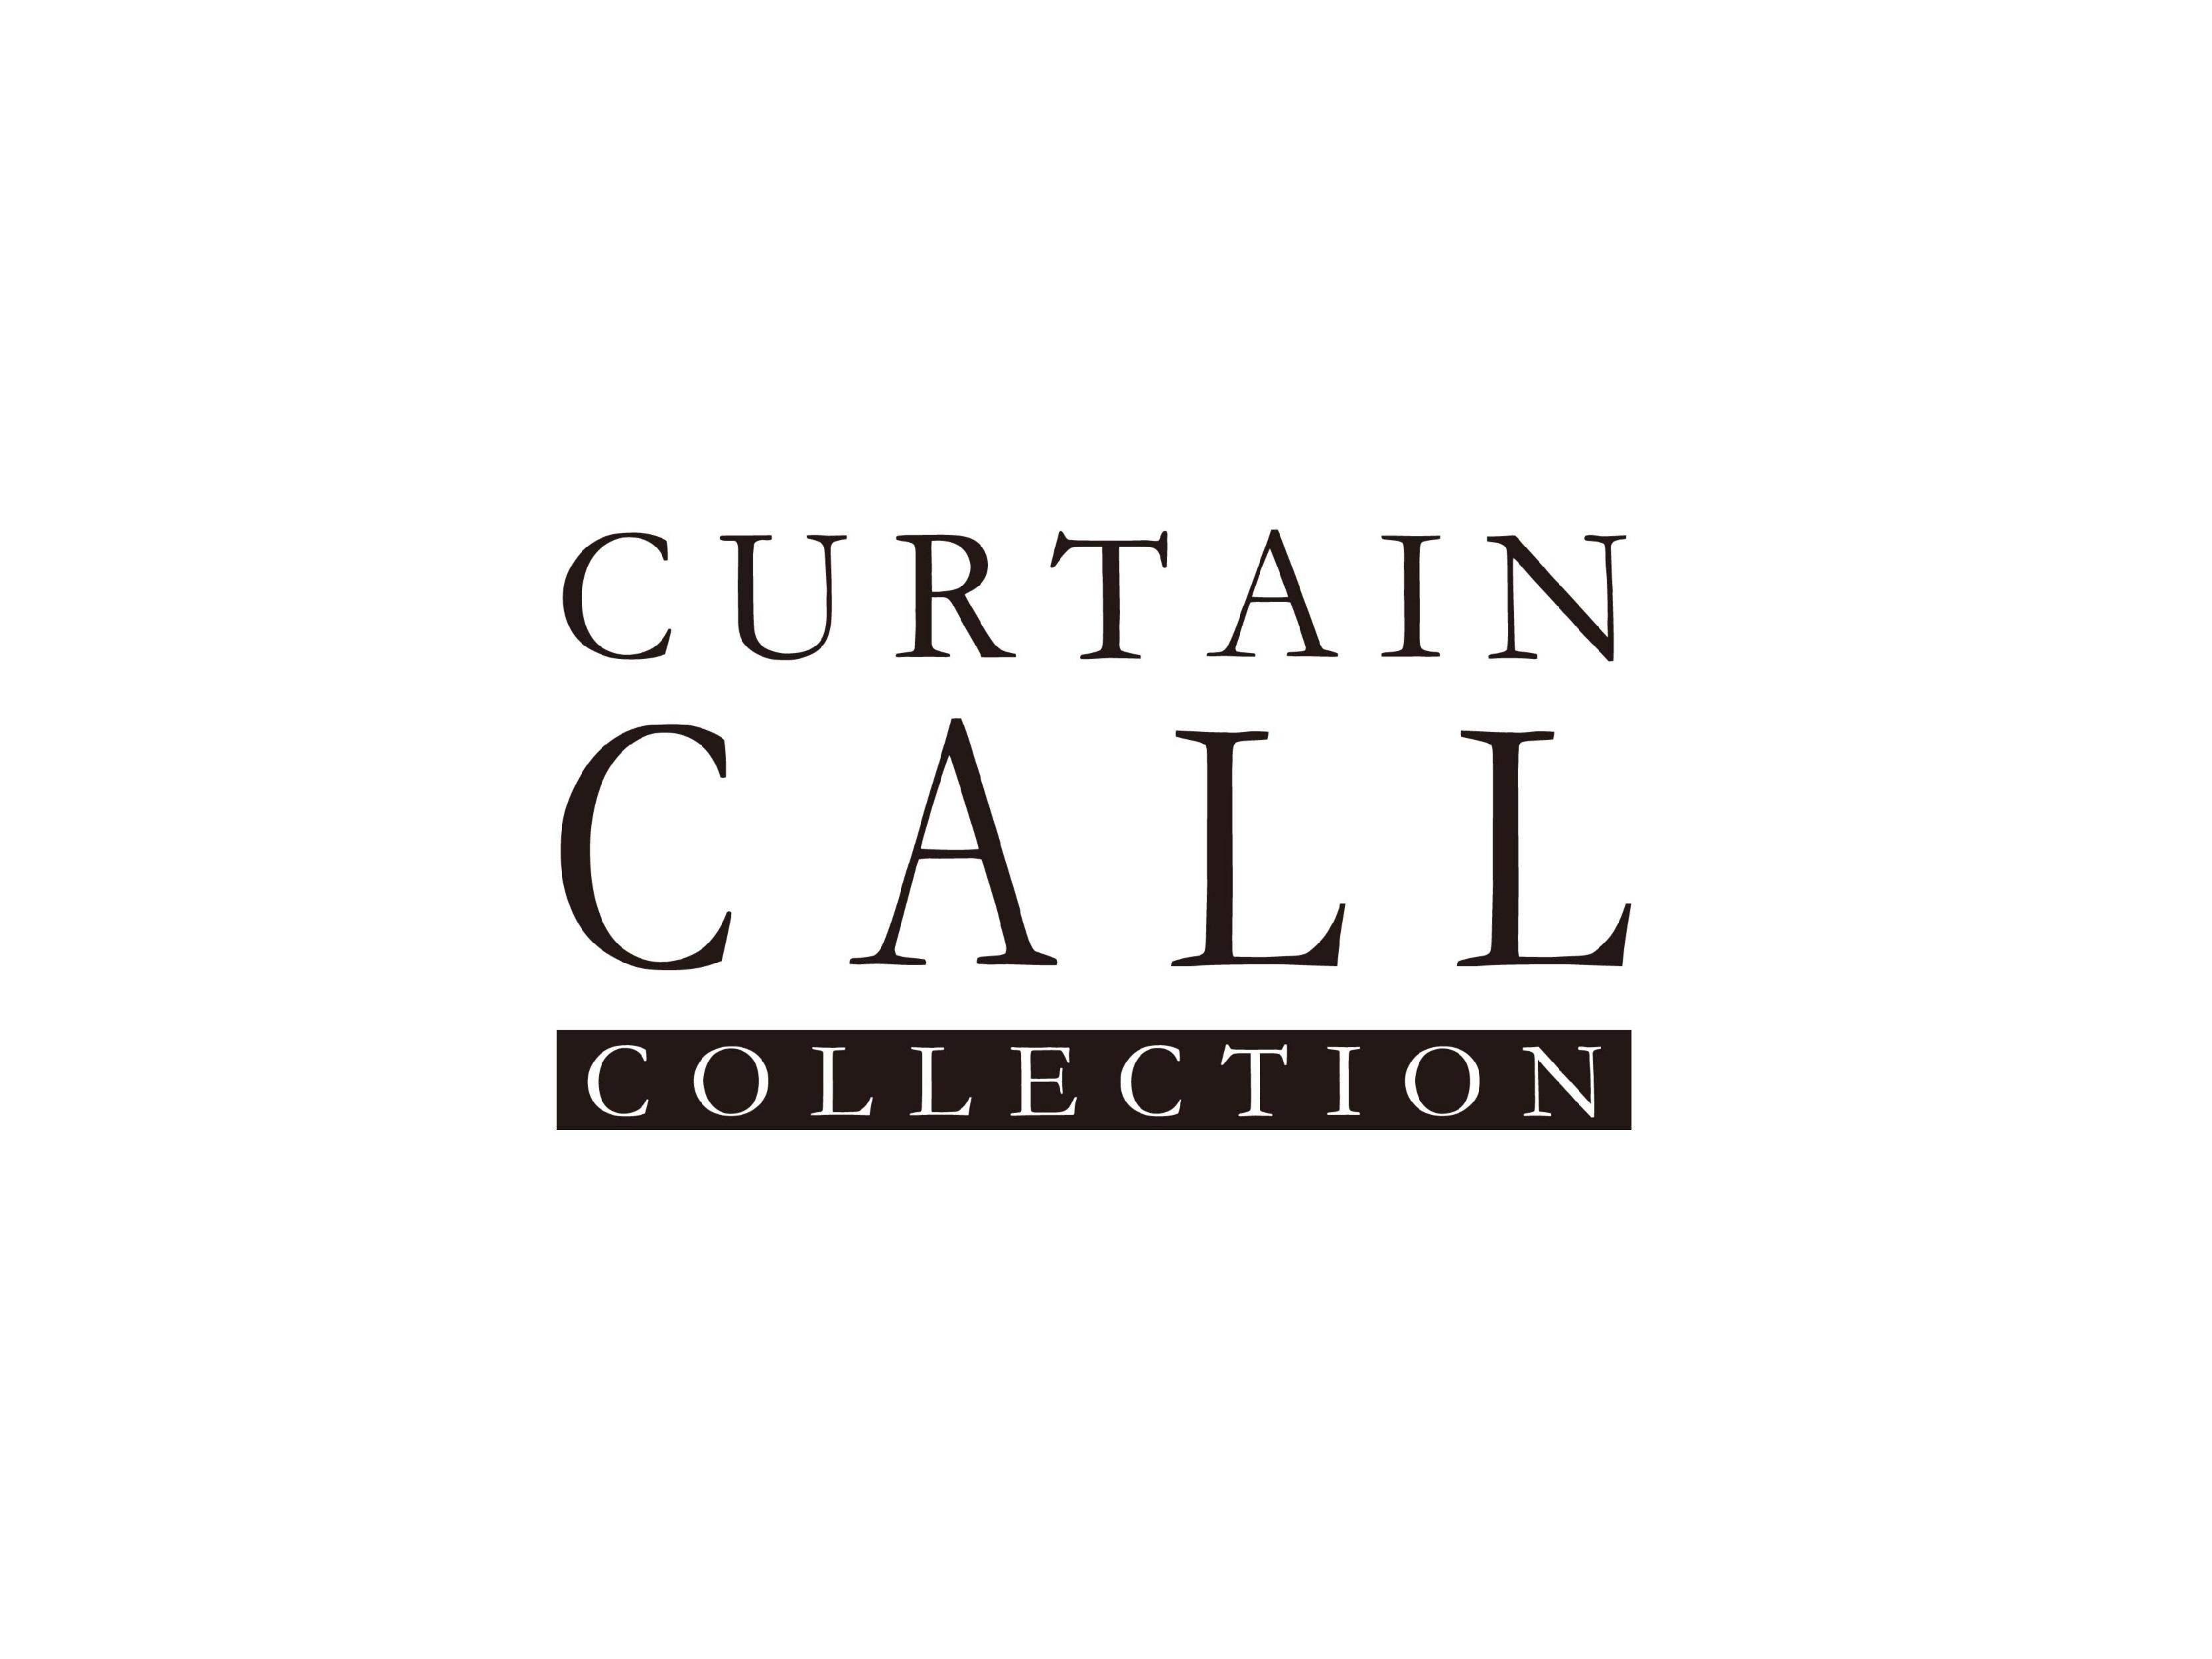 CURTAIN CALL COLLECTION